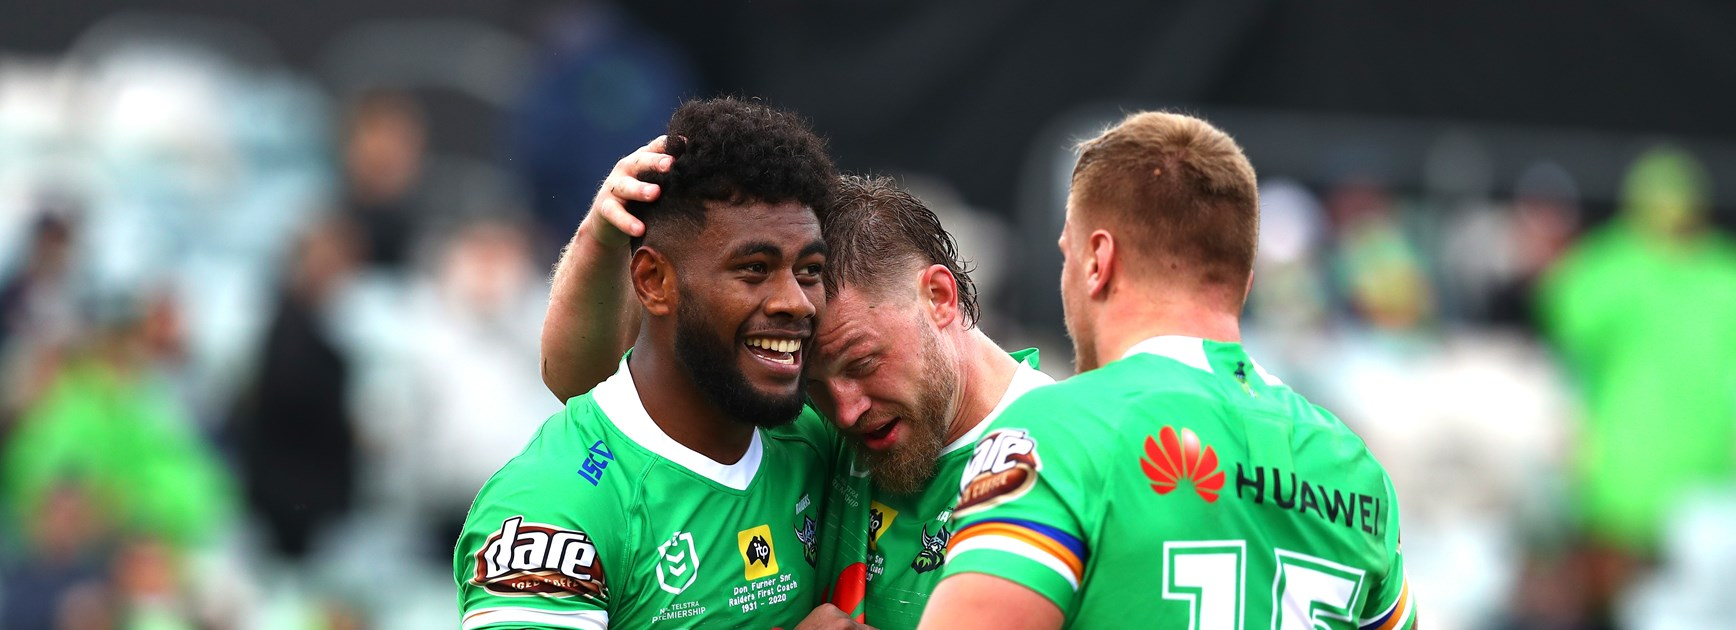 NRL Match Report: Raiders defeat Warriors in heated Sunday clash